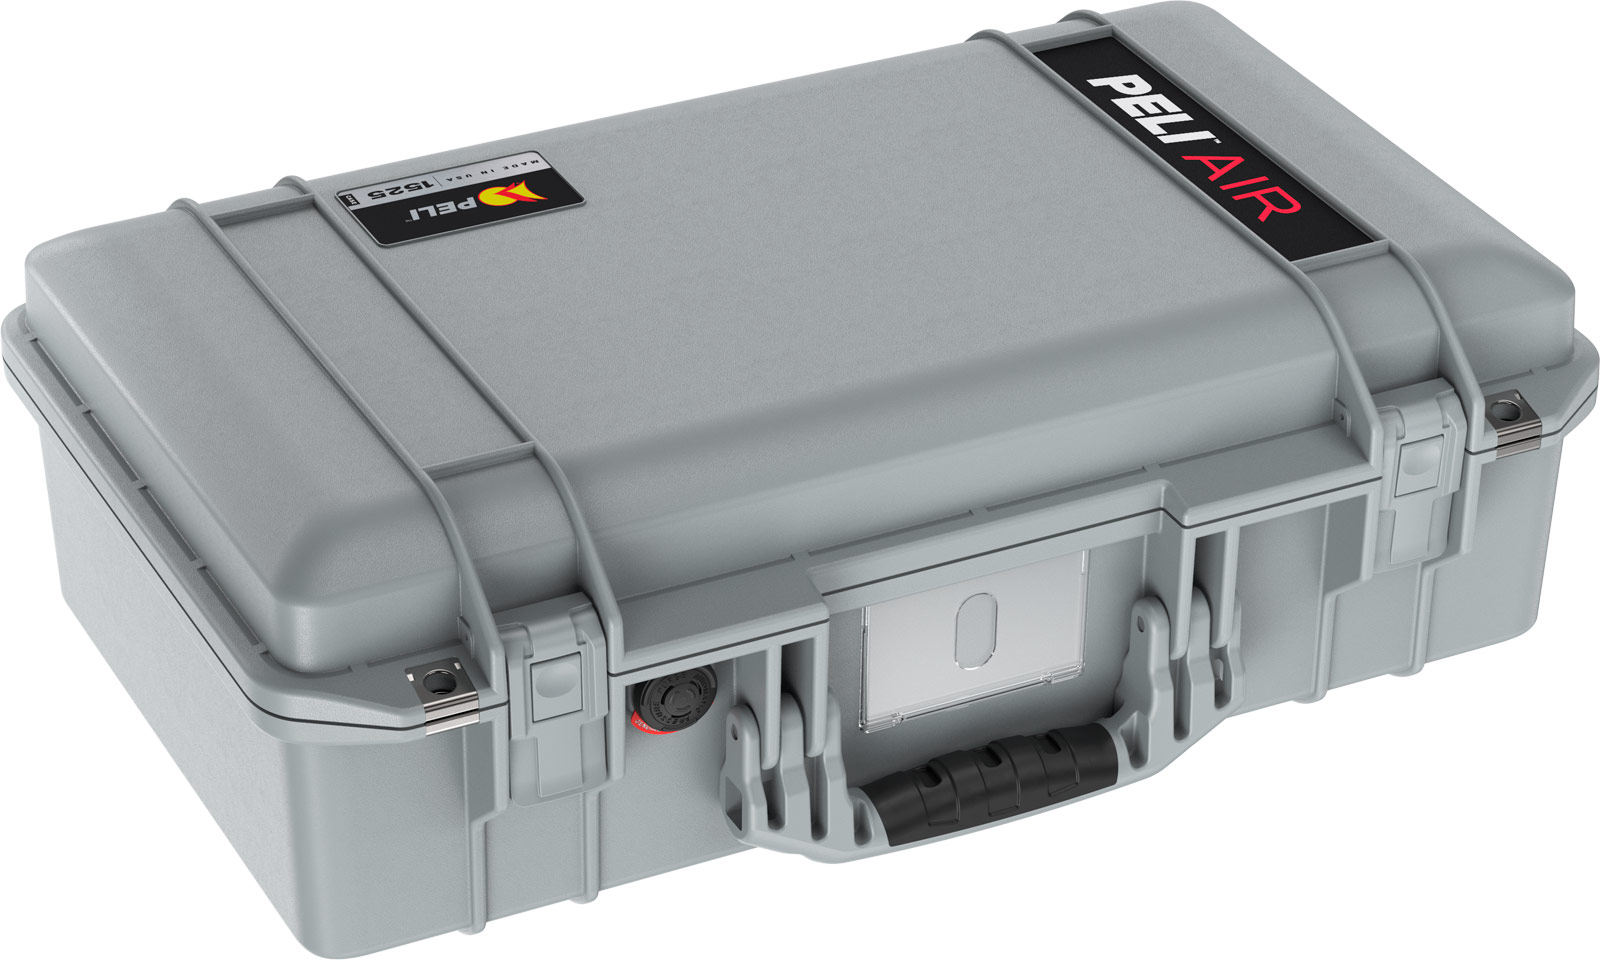 peli grey air case 1525 waterproof cases